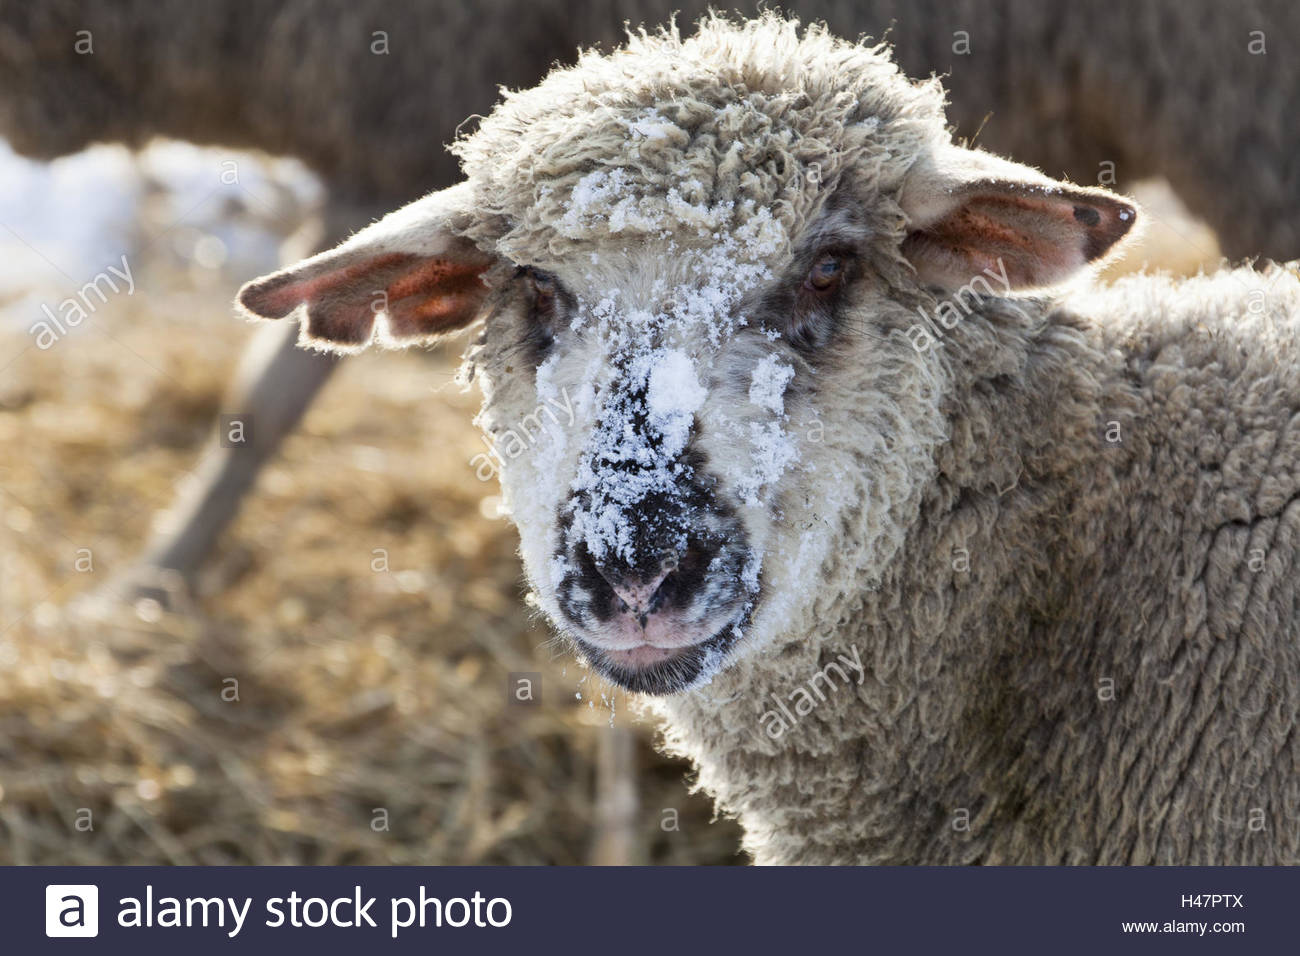 Sheep, portrait, snowcovered face, attentive - Stock Image